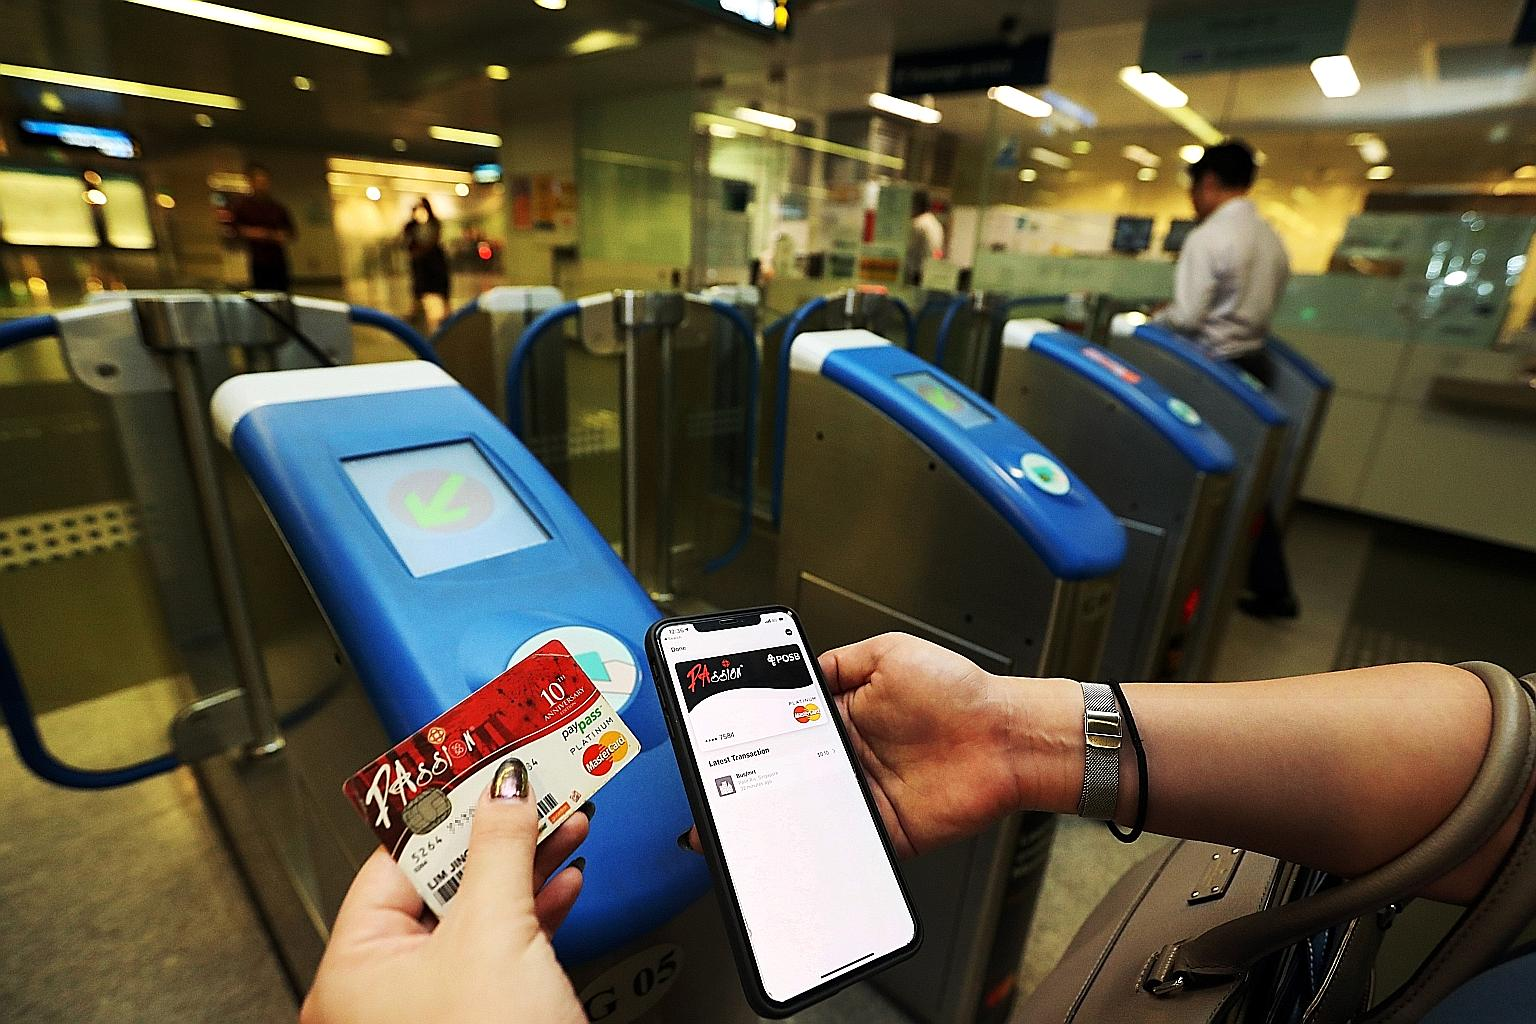 Singapore: SimplyGo is simply giveaway the local business to Visa and Mastercard